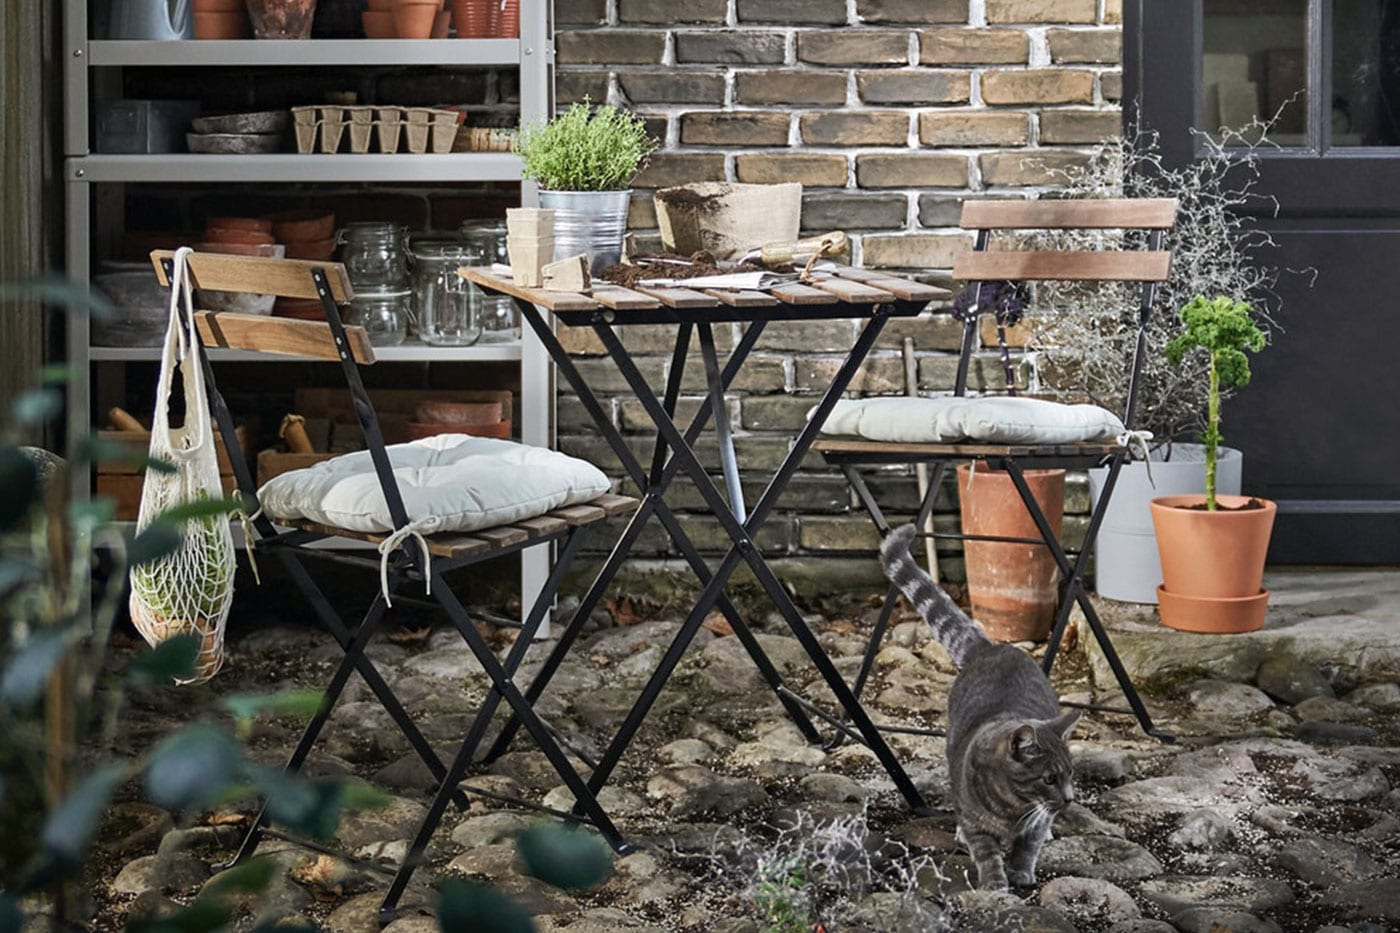 Outdoor furniture series - IKEA